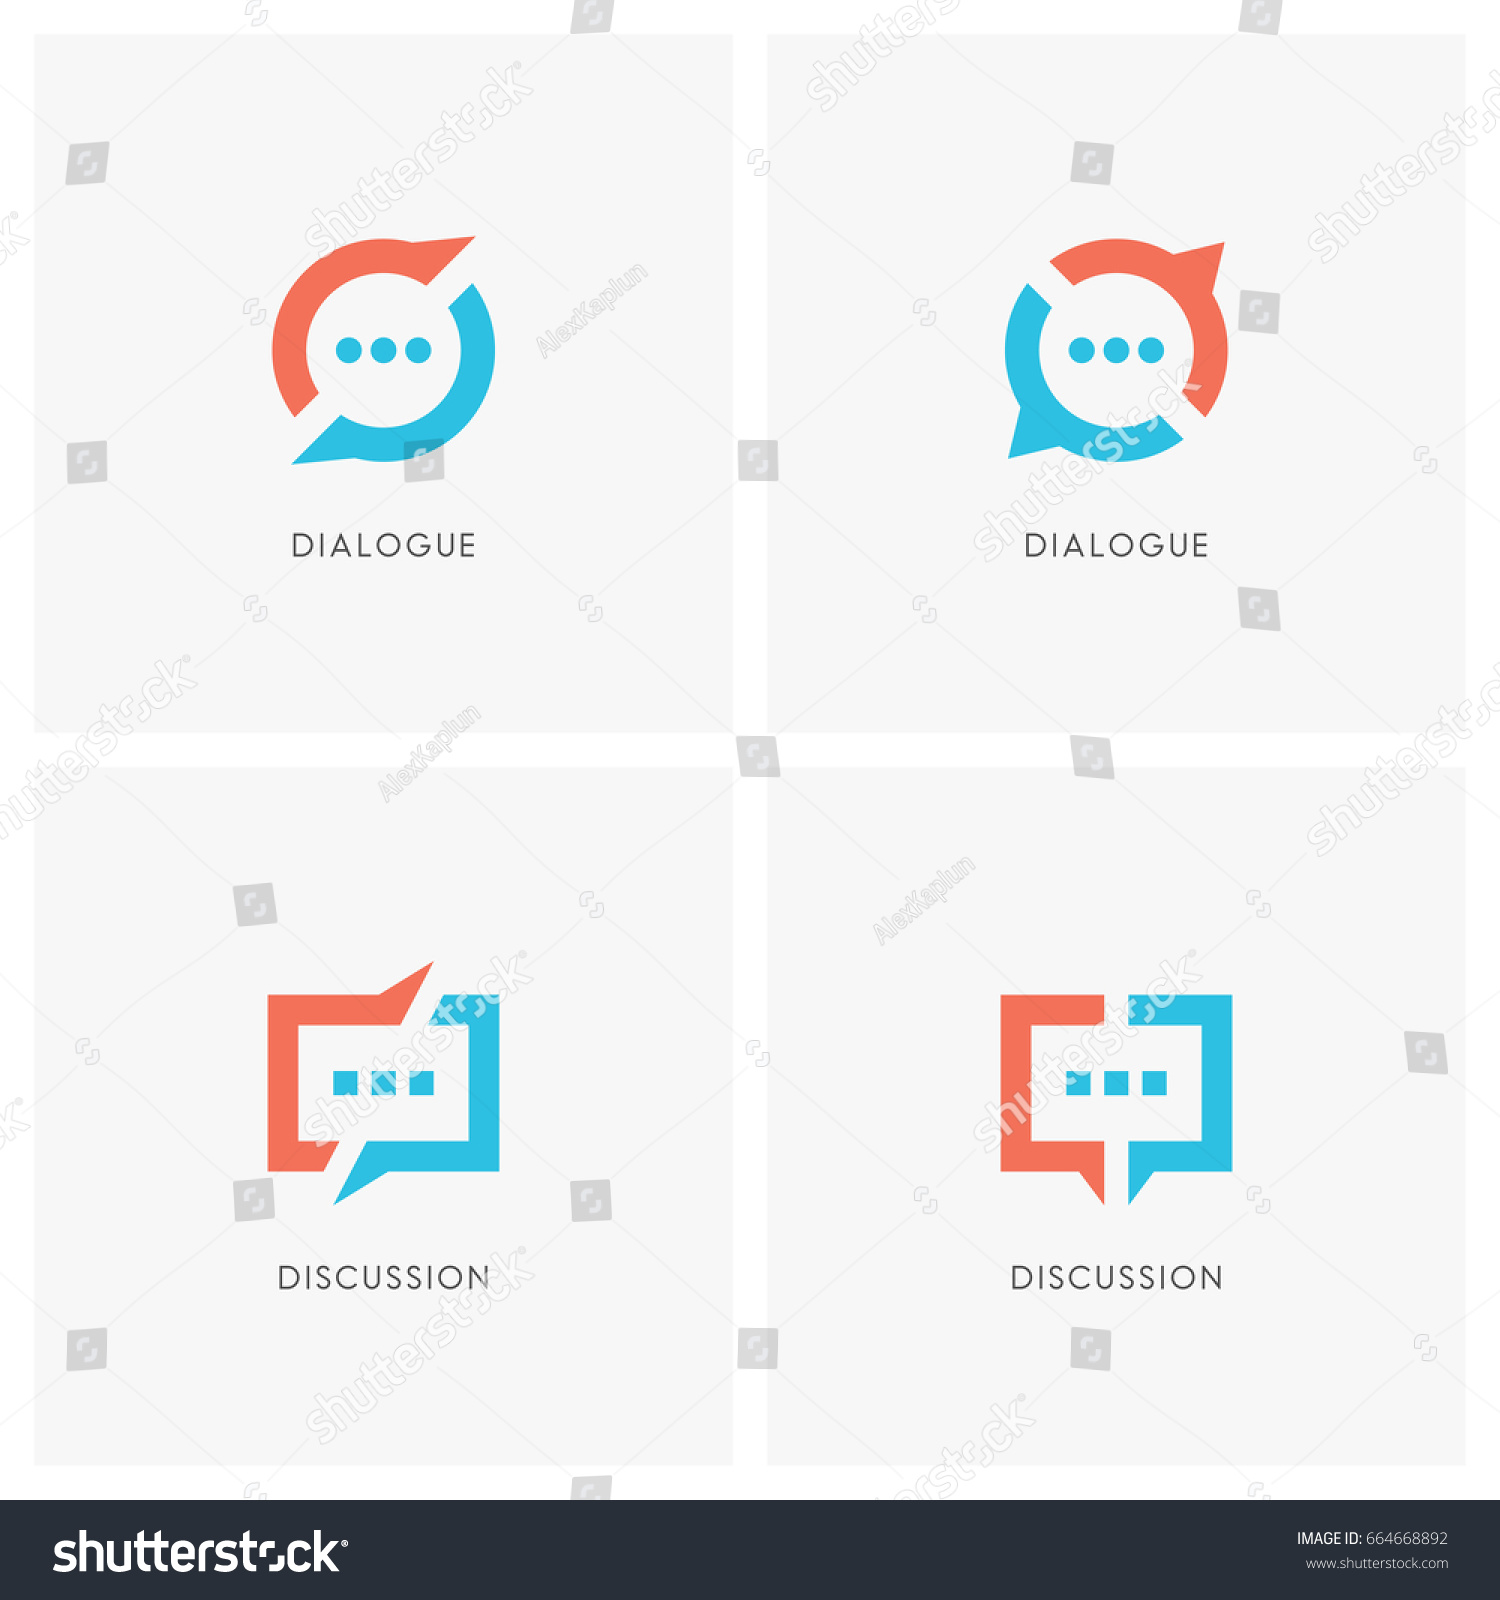 Gratis Juridisch Advies Chat Dialogue Discussion Logo Set Split Chat Stockvector Rechtenvrij